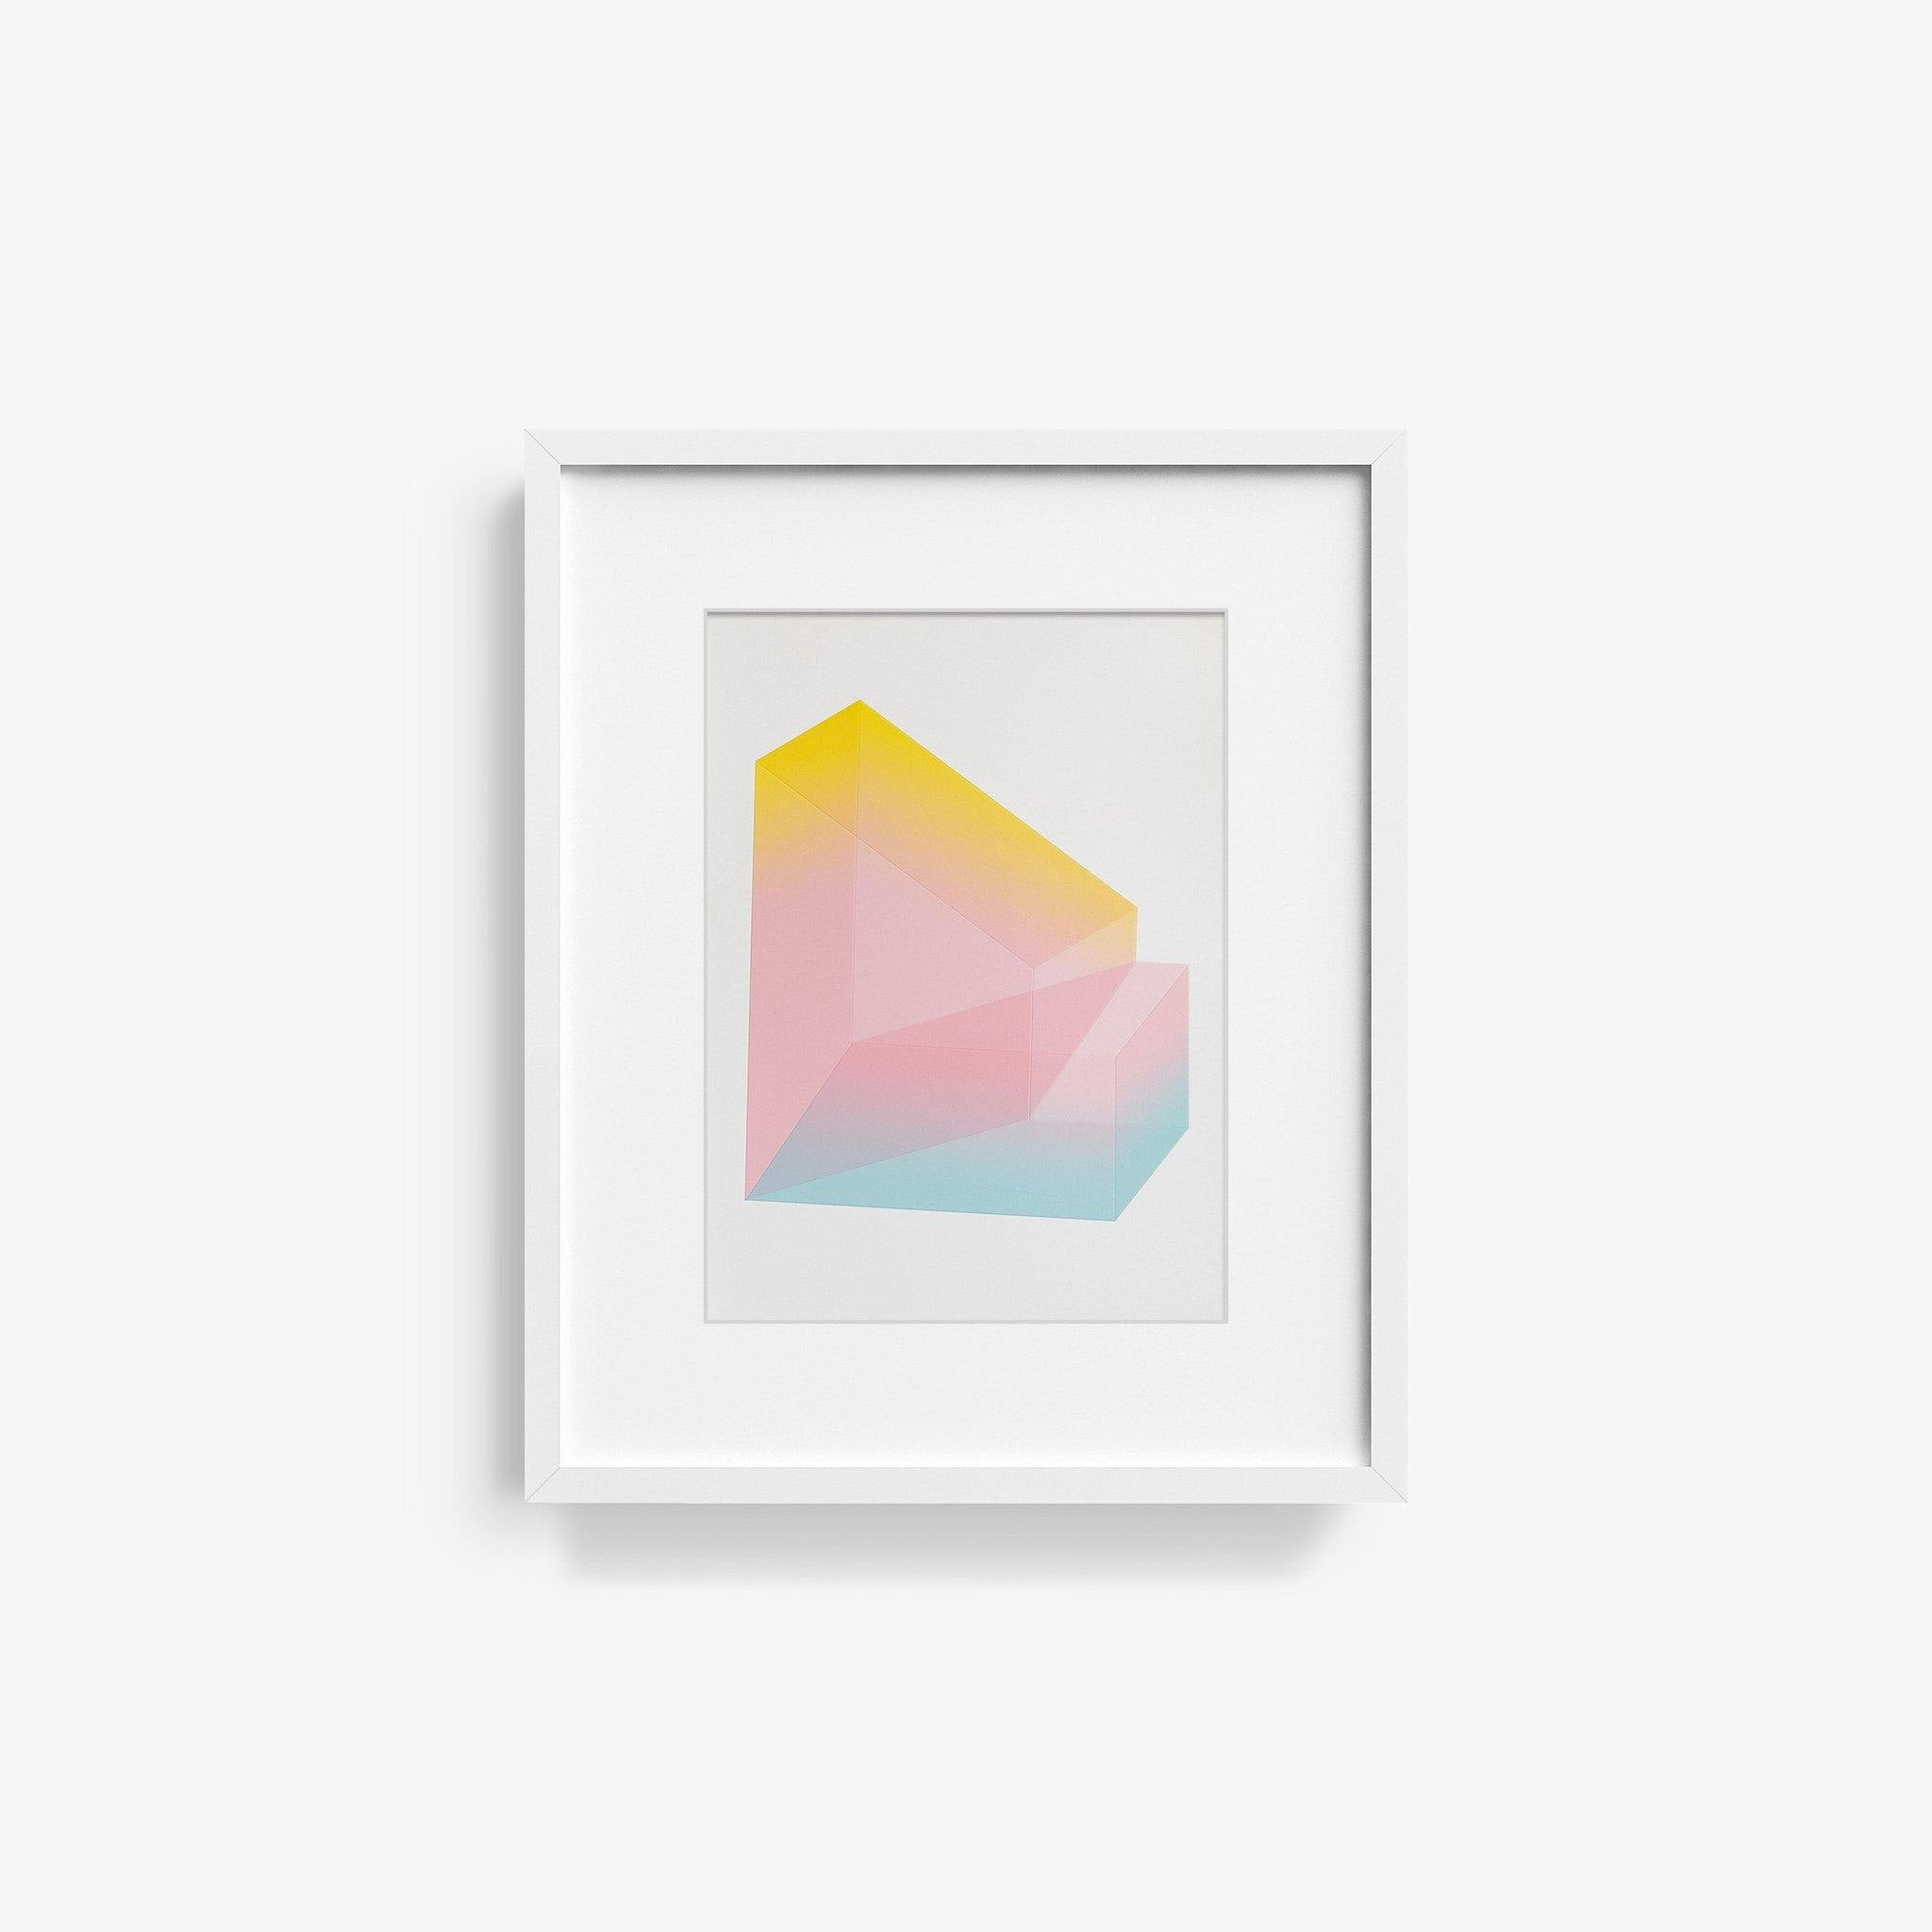 Accidental Happiness, No. 51, Print  by  Accidental Happiness, No. 51 Tappan